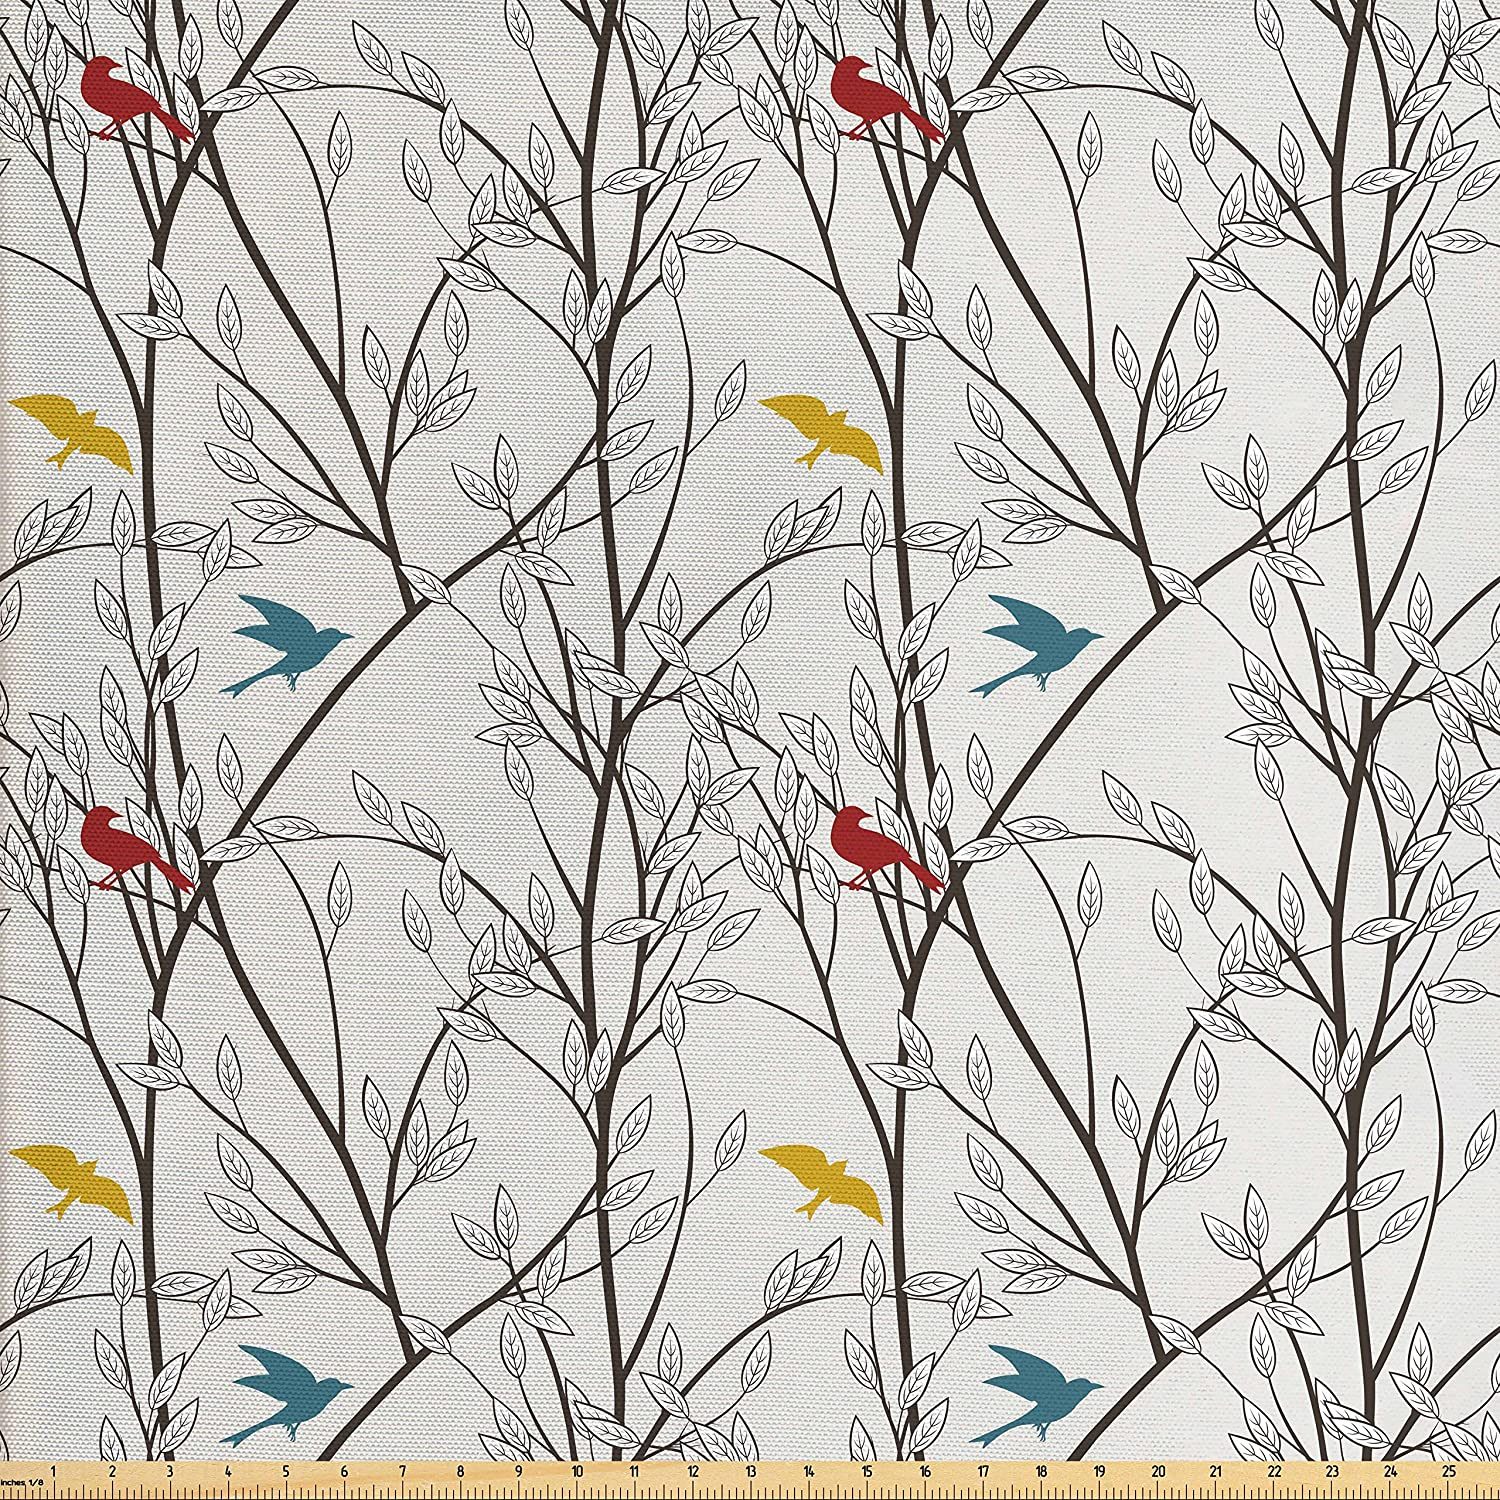 Ambesonne Nature Fabric by The Yard, Birds Wildlife Cartoon Like Image with Tree Leaf Art Print, Decorative Fabric for Upholstery and Home Accents, Grey Maroon Blue and Mustard Yellow fab_27533